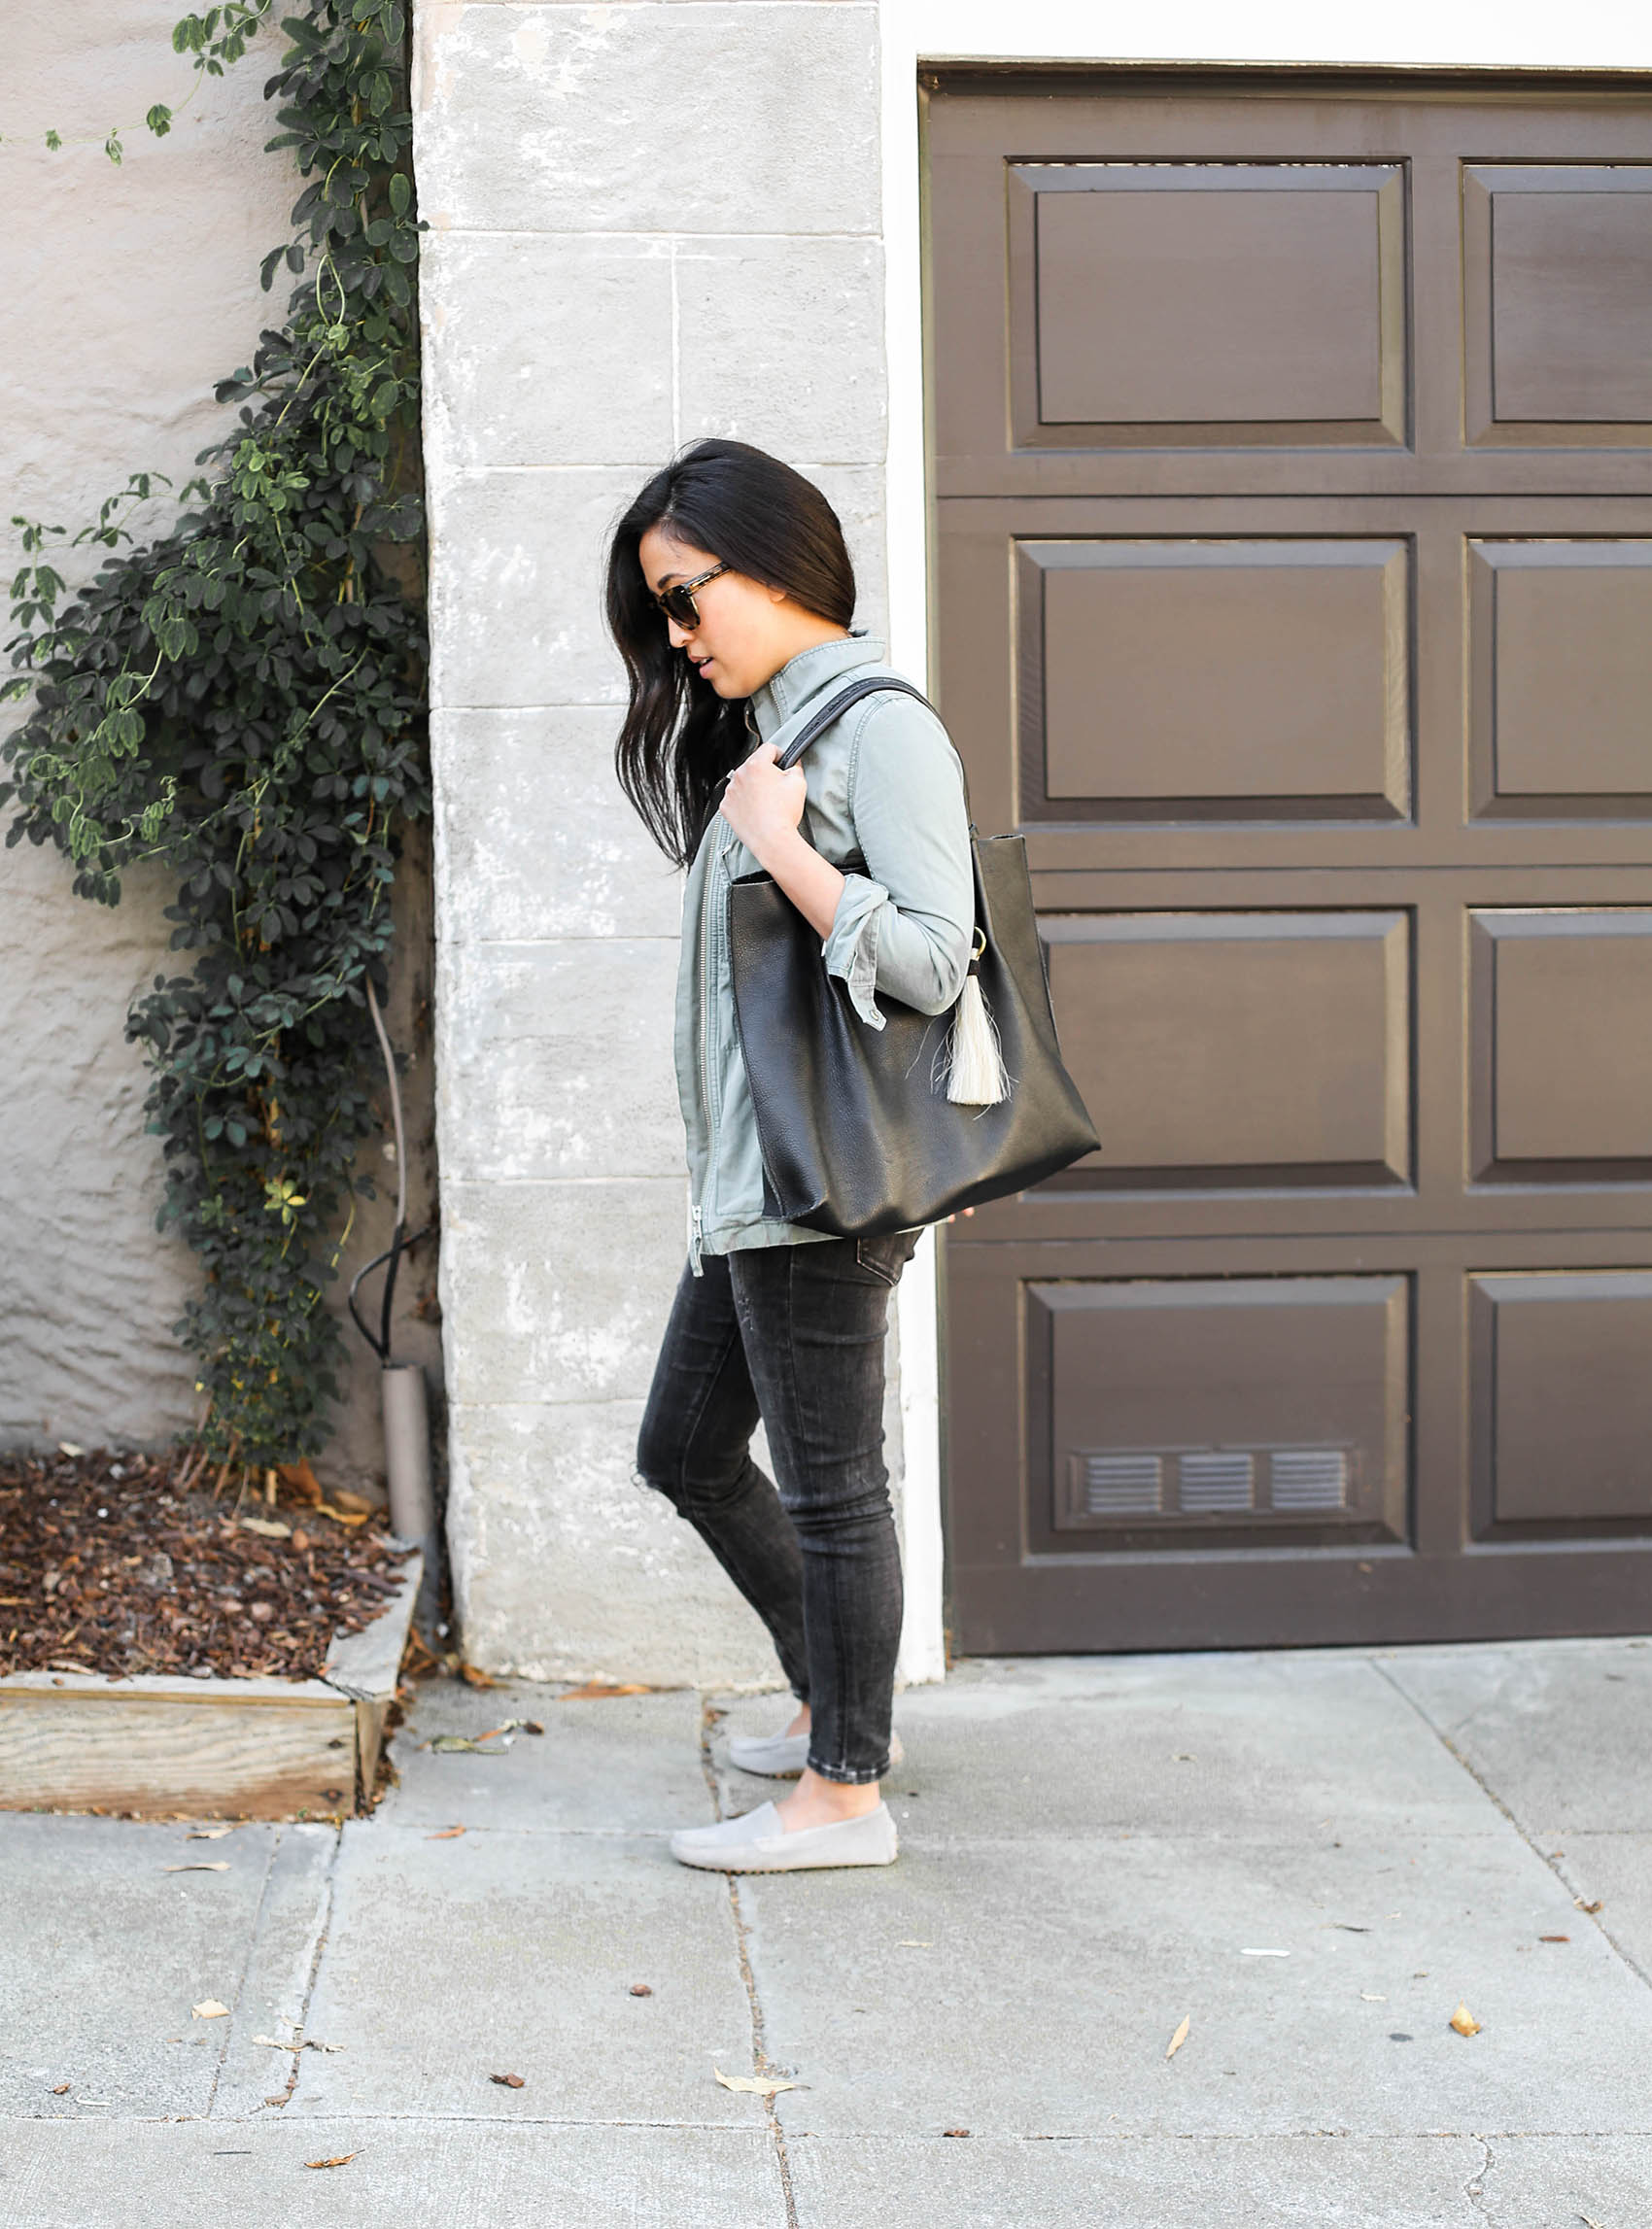 weekend uniform | @bananarepublic denim, @oliveve tote, @madewell jacket, @mgemi loafers | via @victoriamstudio